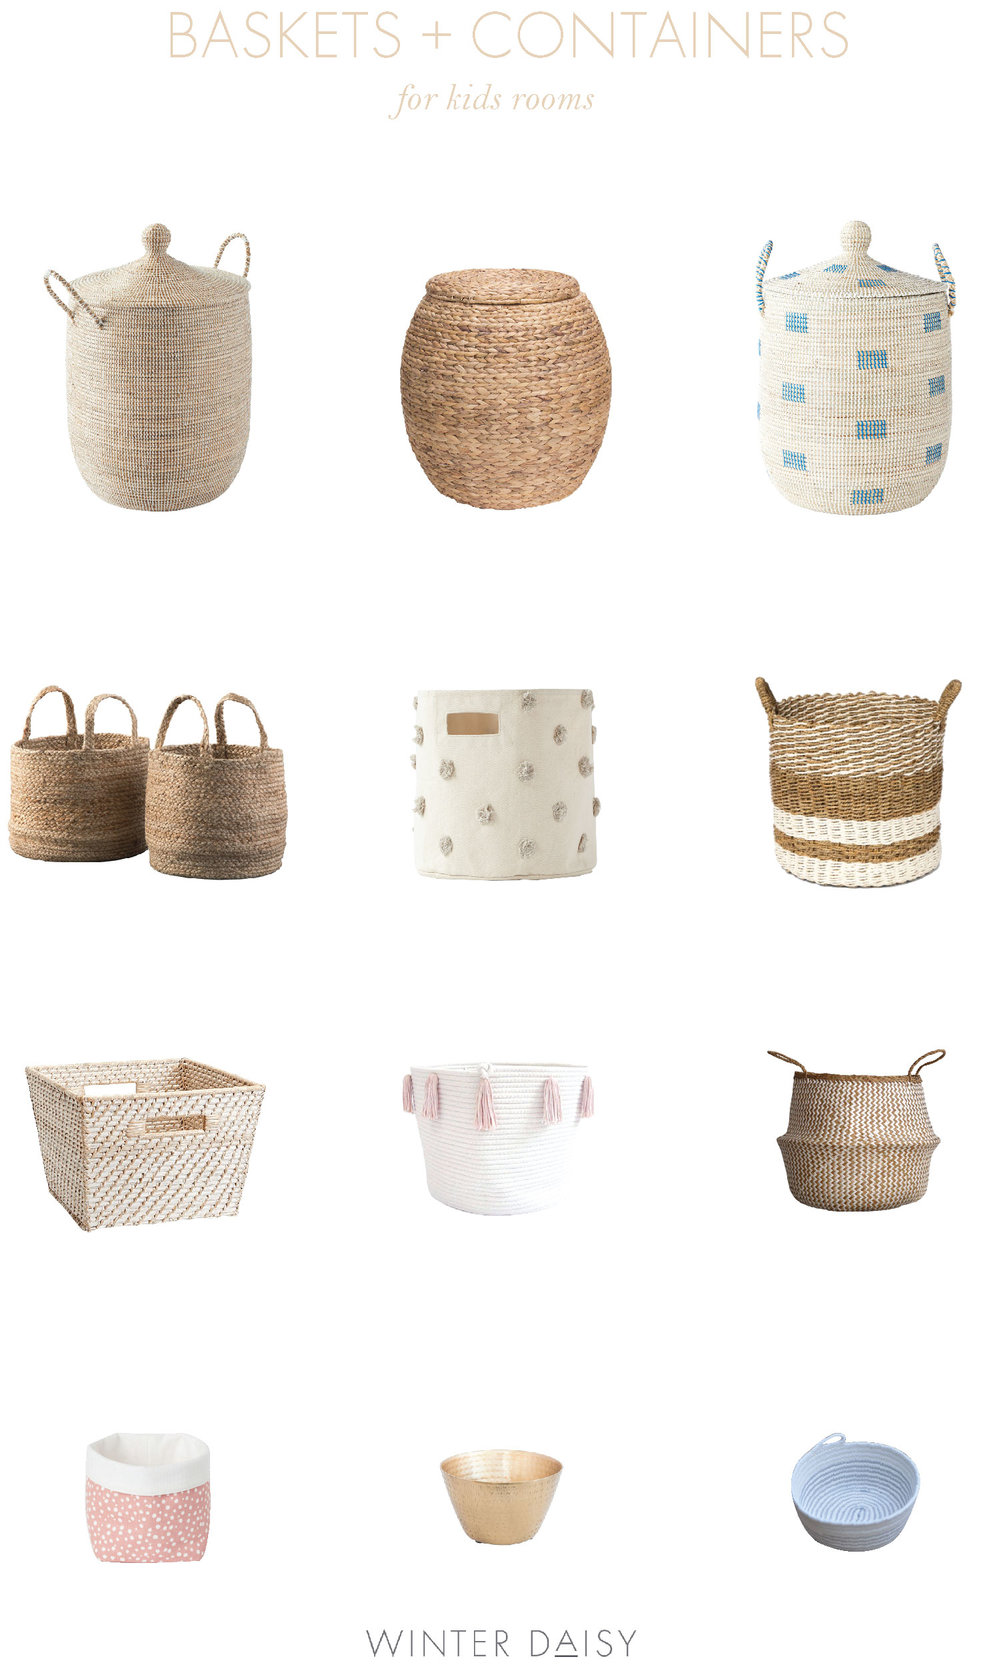 storage baskets, bins and bowls for kids spaces